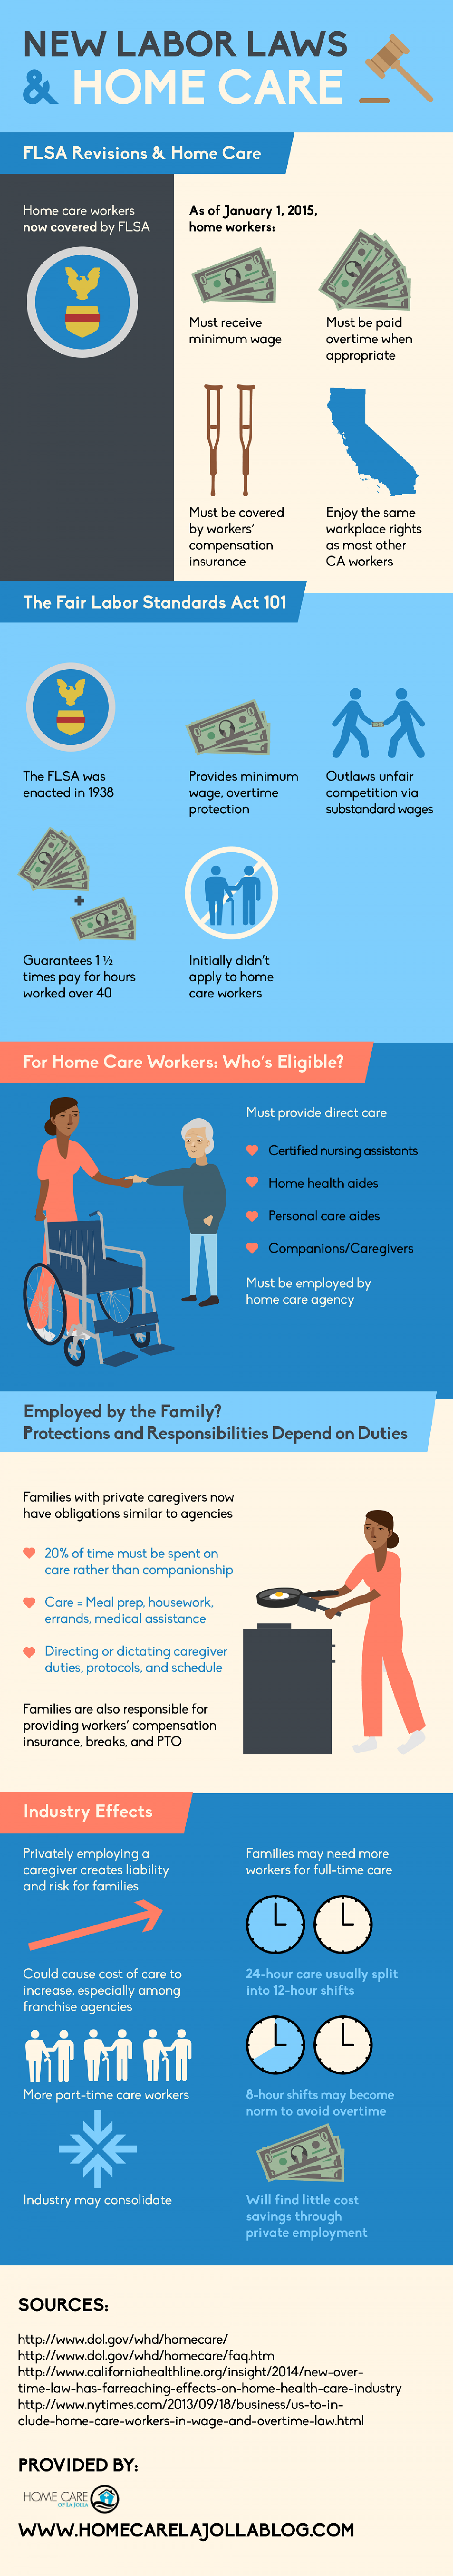 New Labor Laws and Home Care Infographic